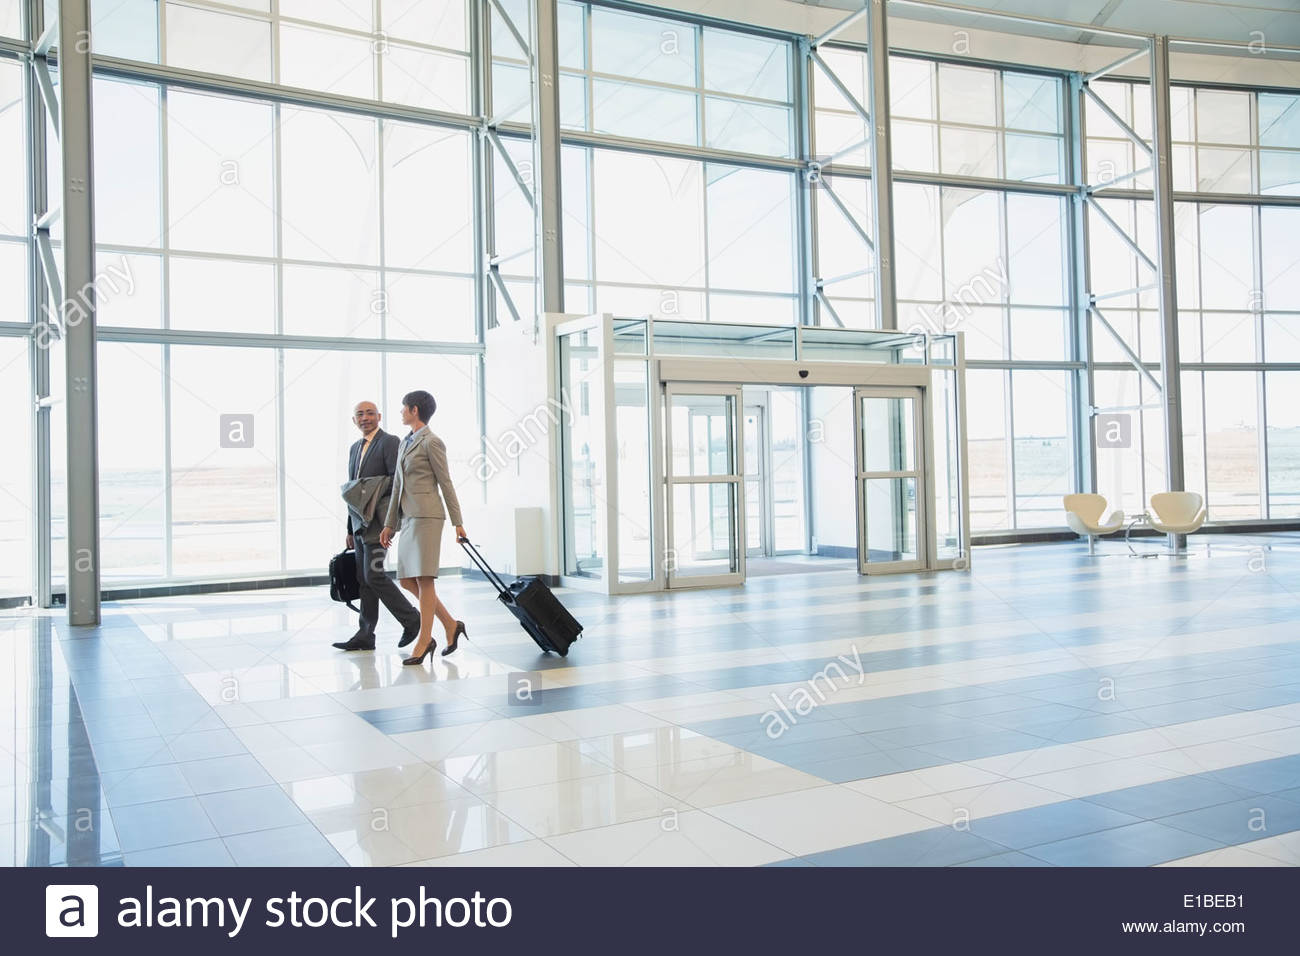 Business people with suitcases in modern lobby - Stock Image